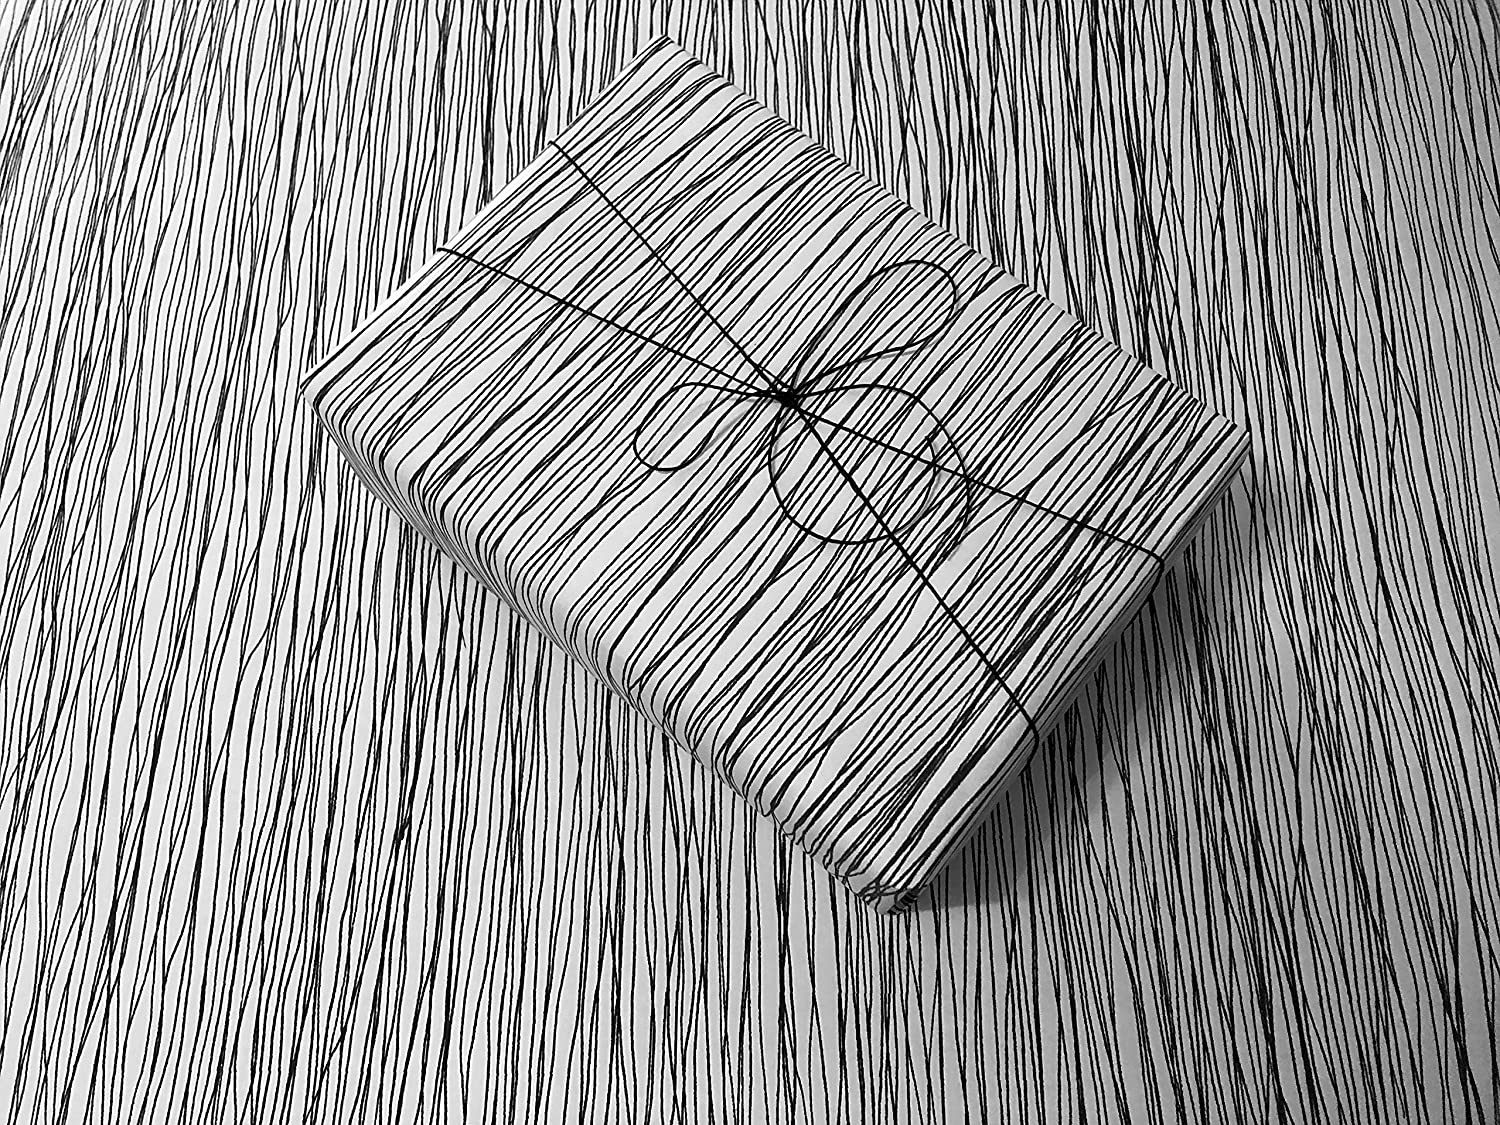 Spooky Black Lines Gothic Wrapping Paper - Black and White Gift Wrap Roll - Premium Handmade Wrapping Paper